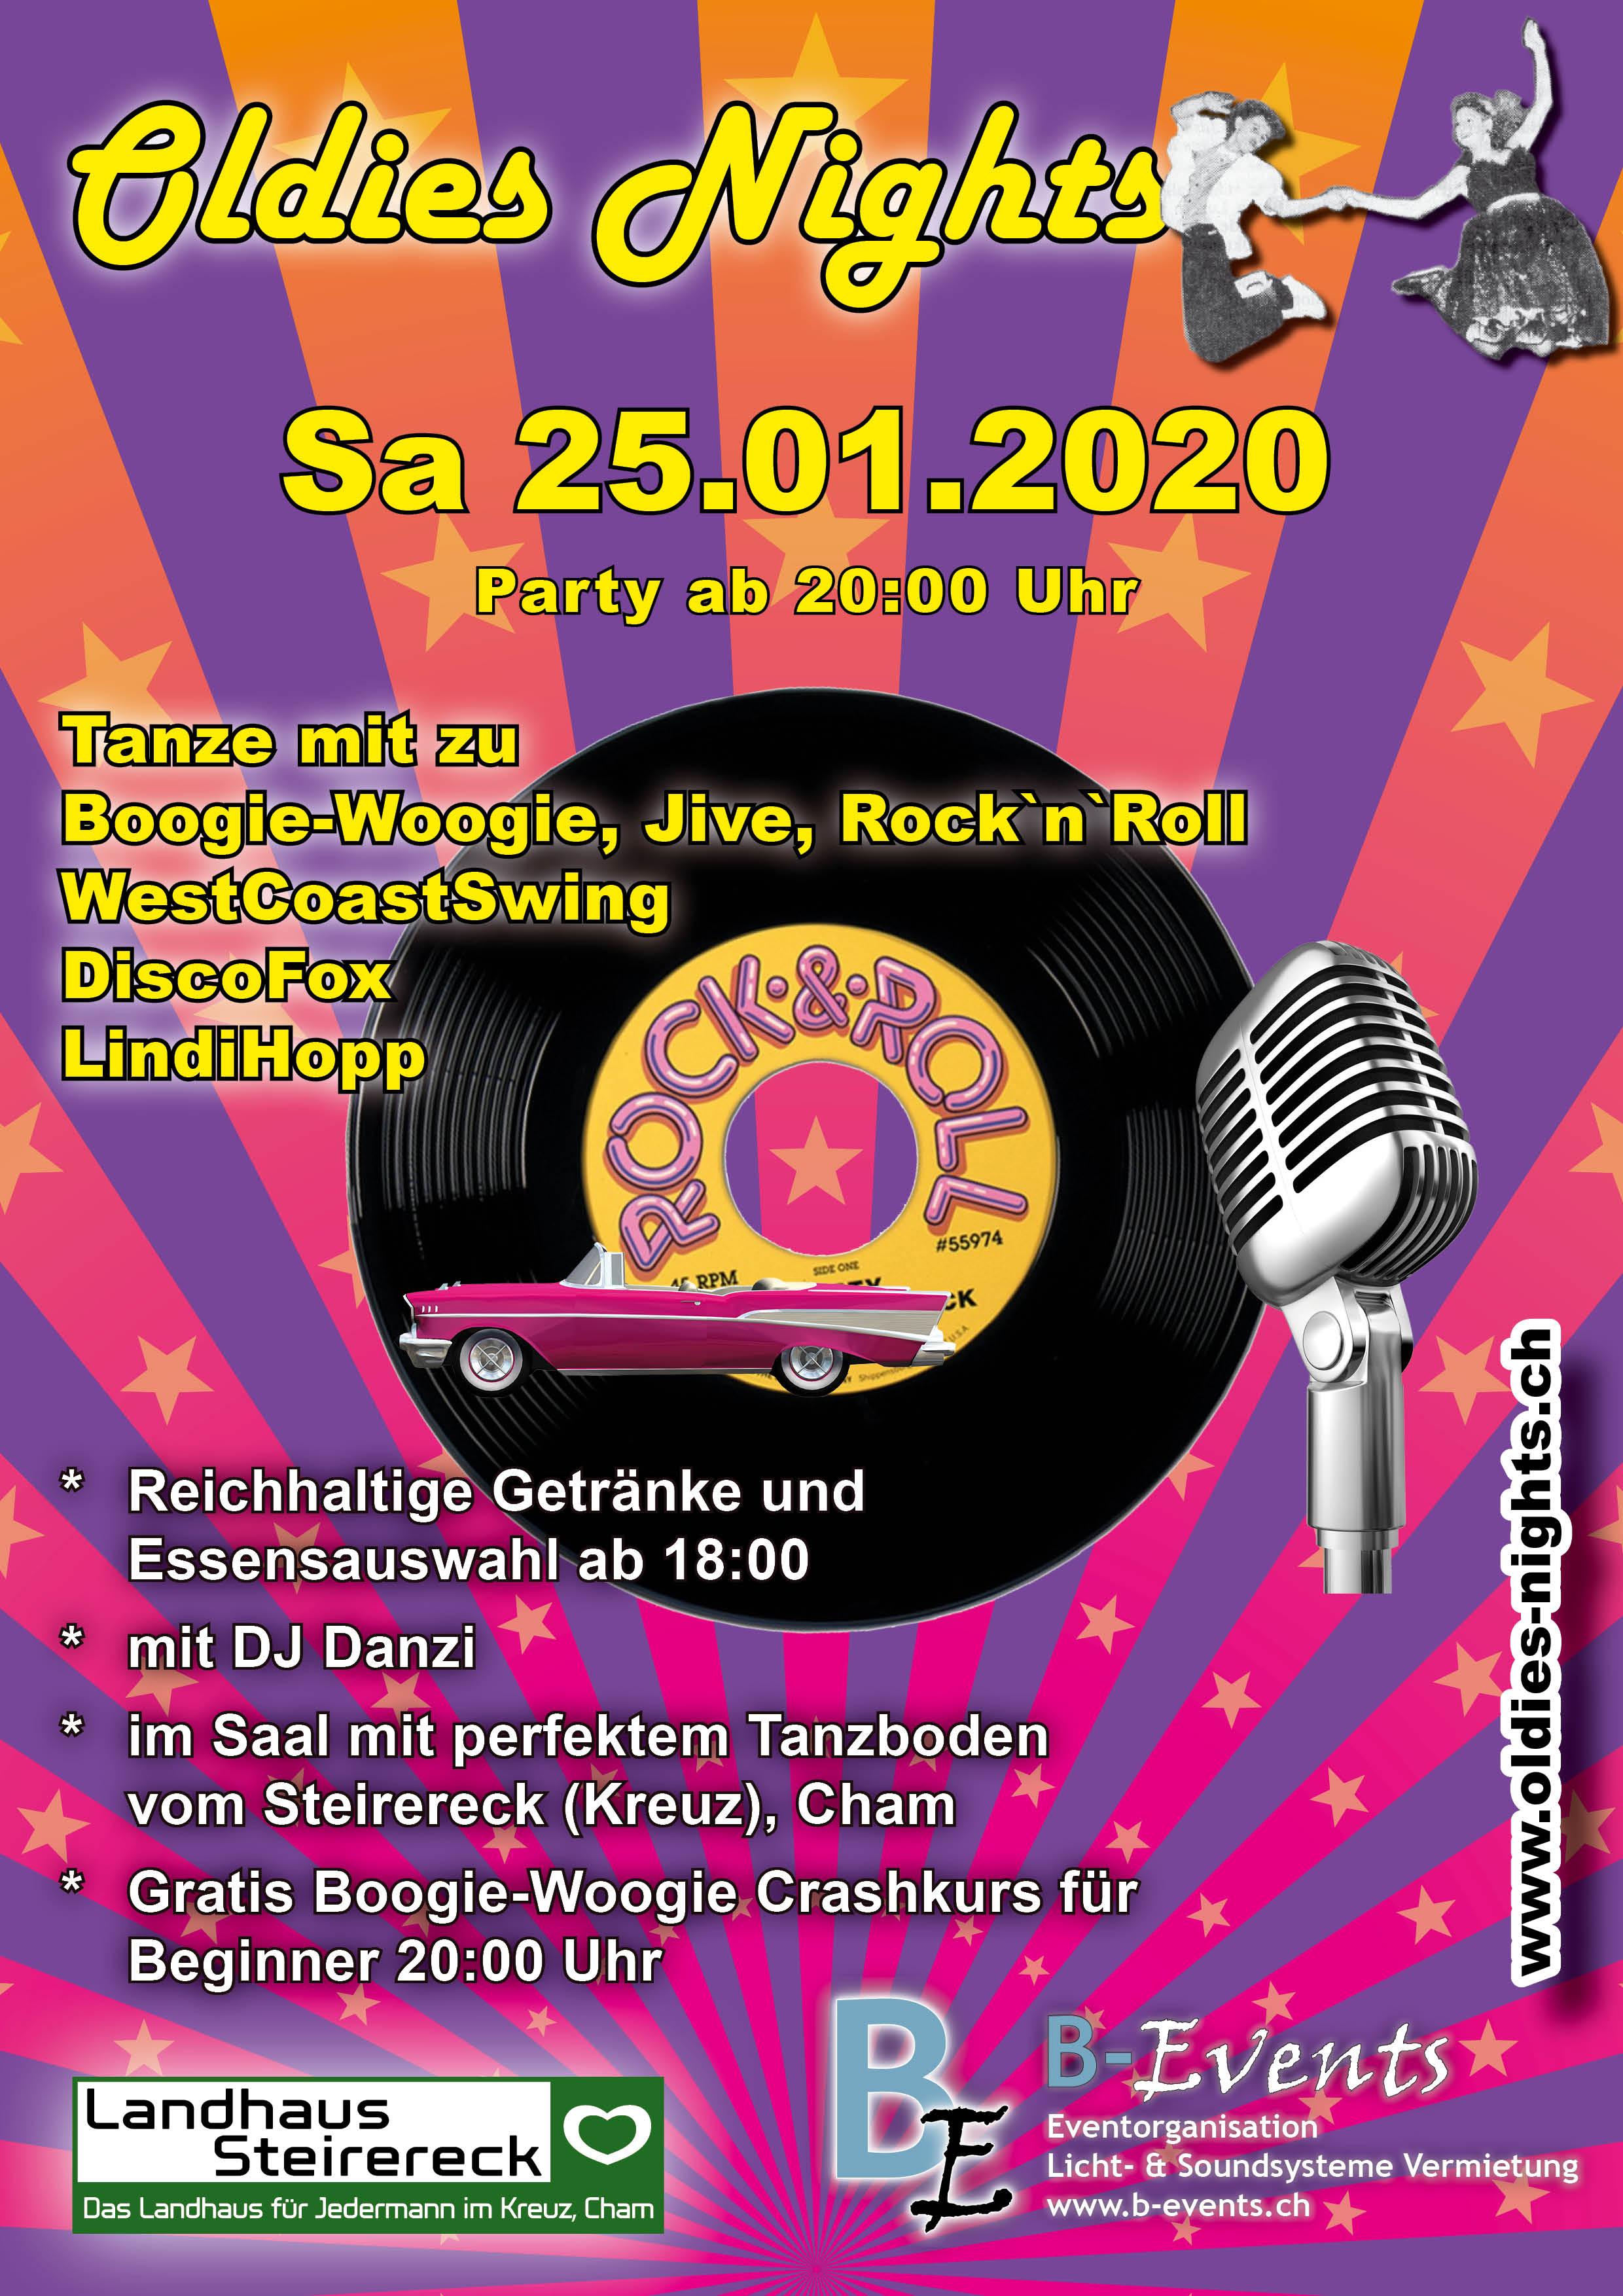 A2 Oldies Night 2020 Steirereck V01.01b kl